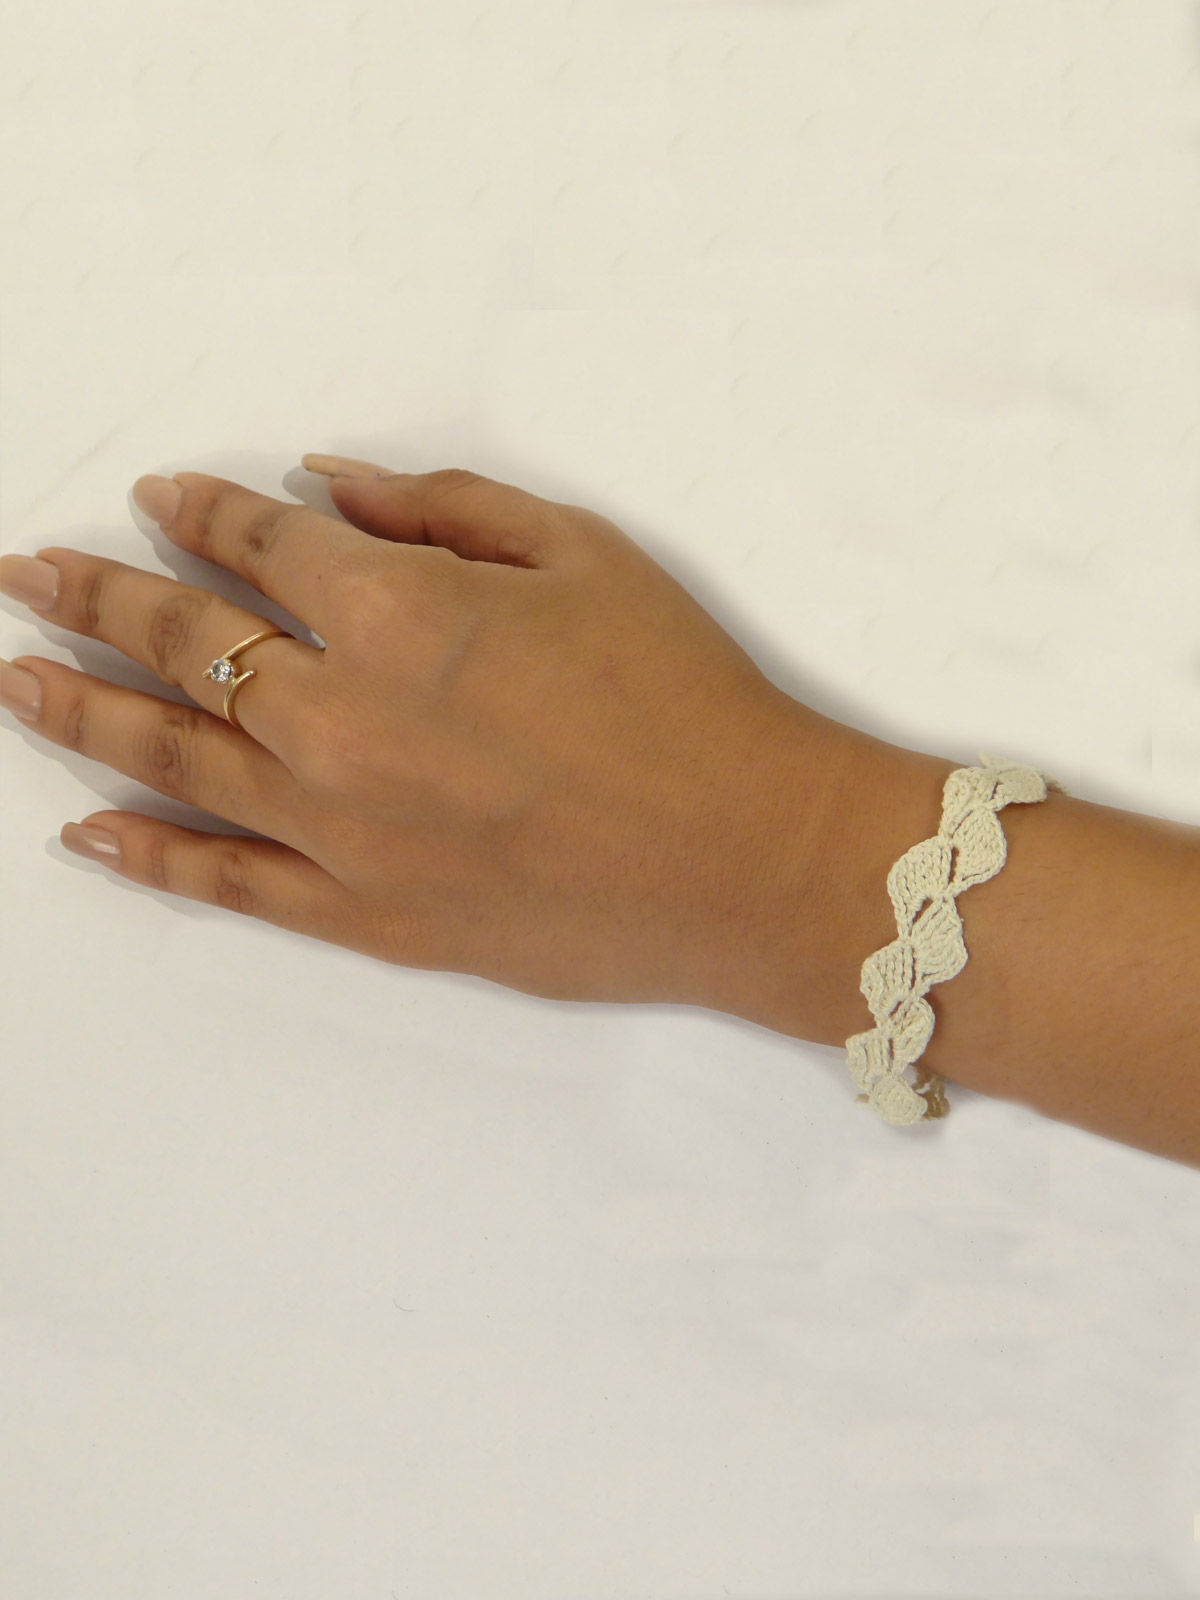 White crochet fabric necklace and bracelet